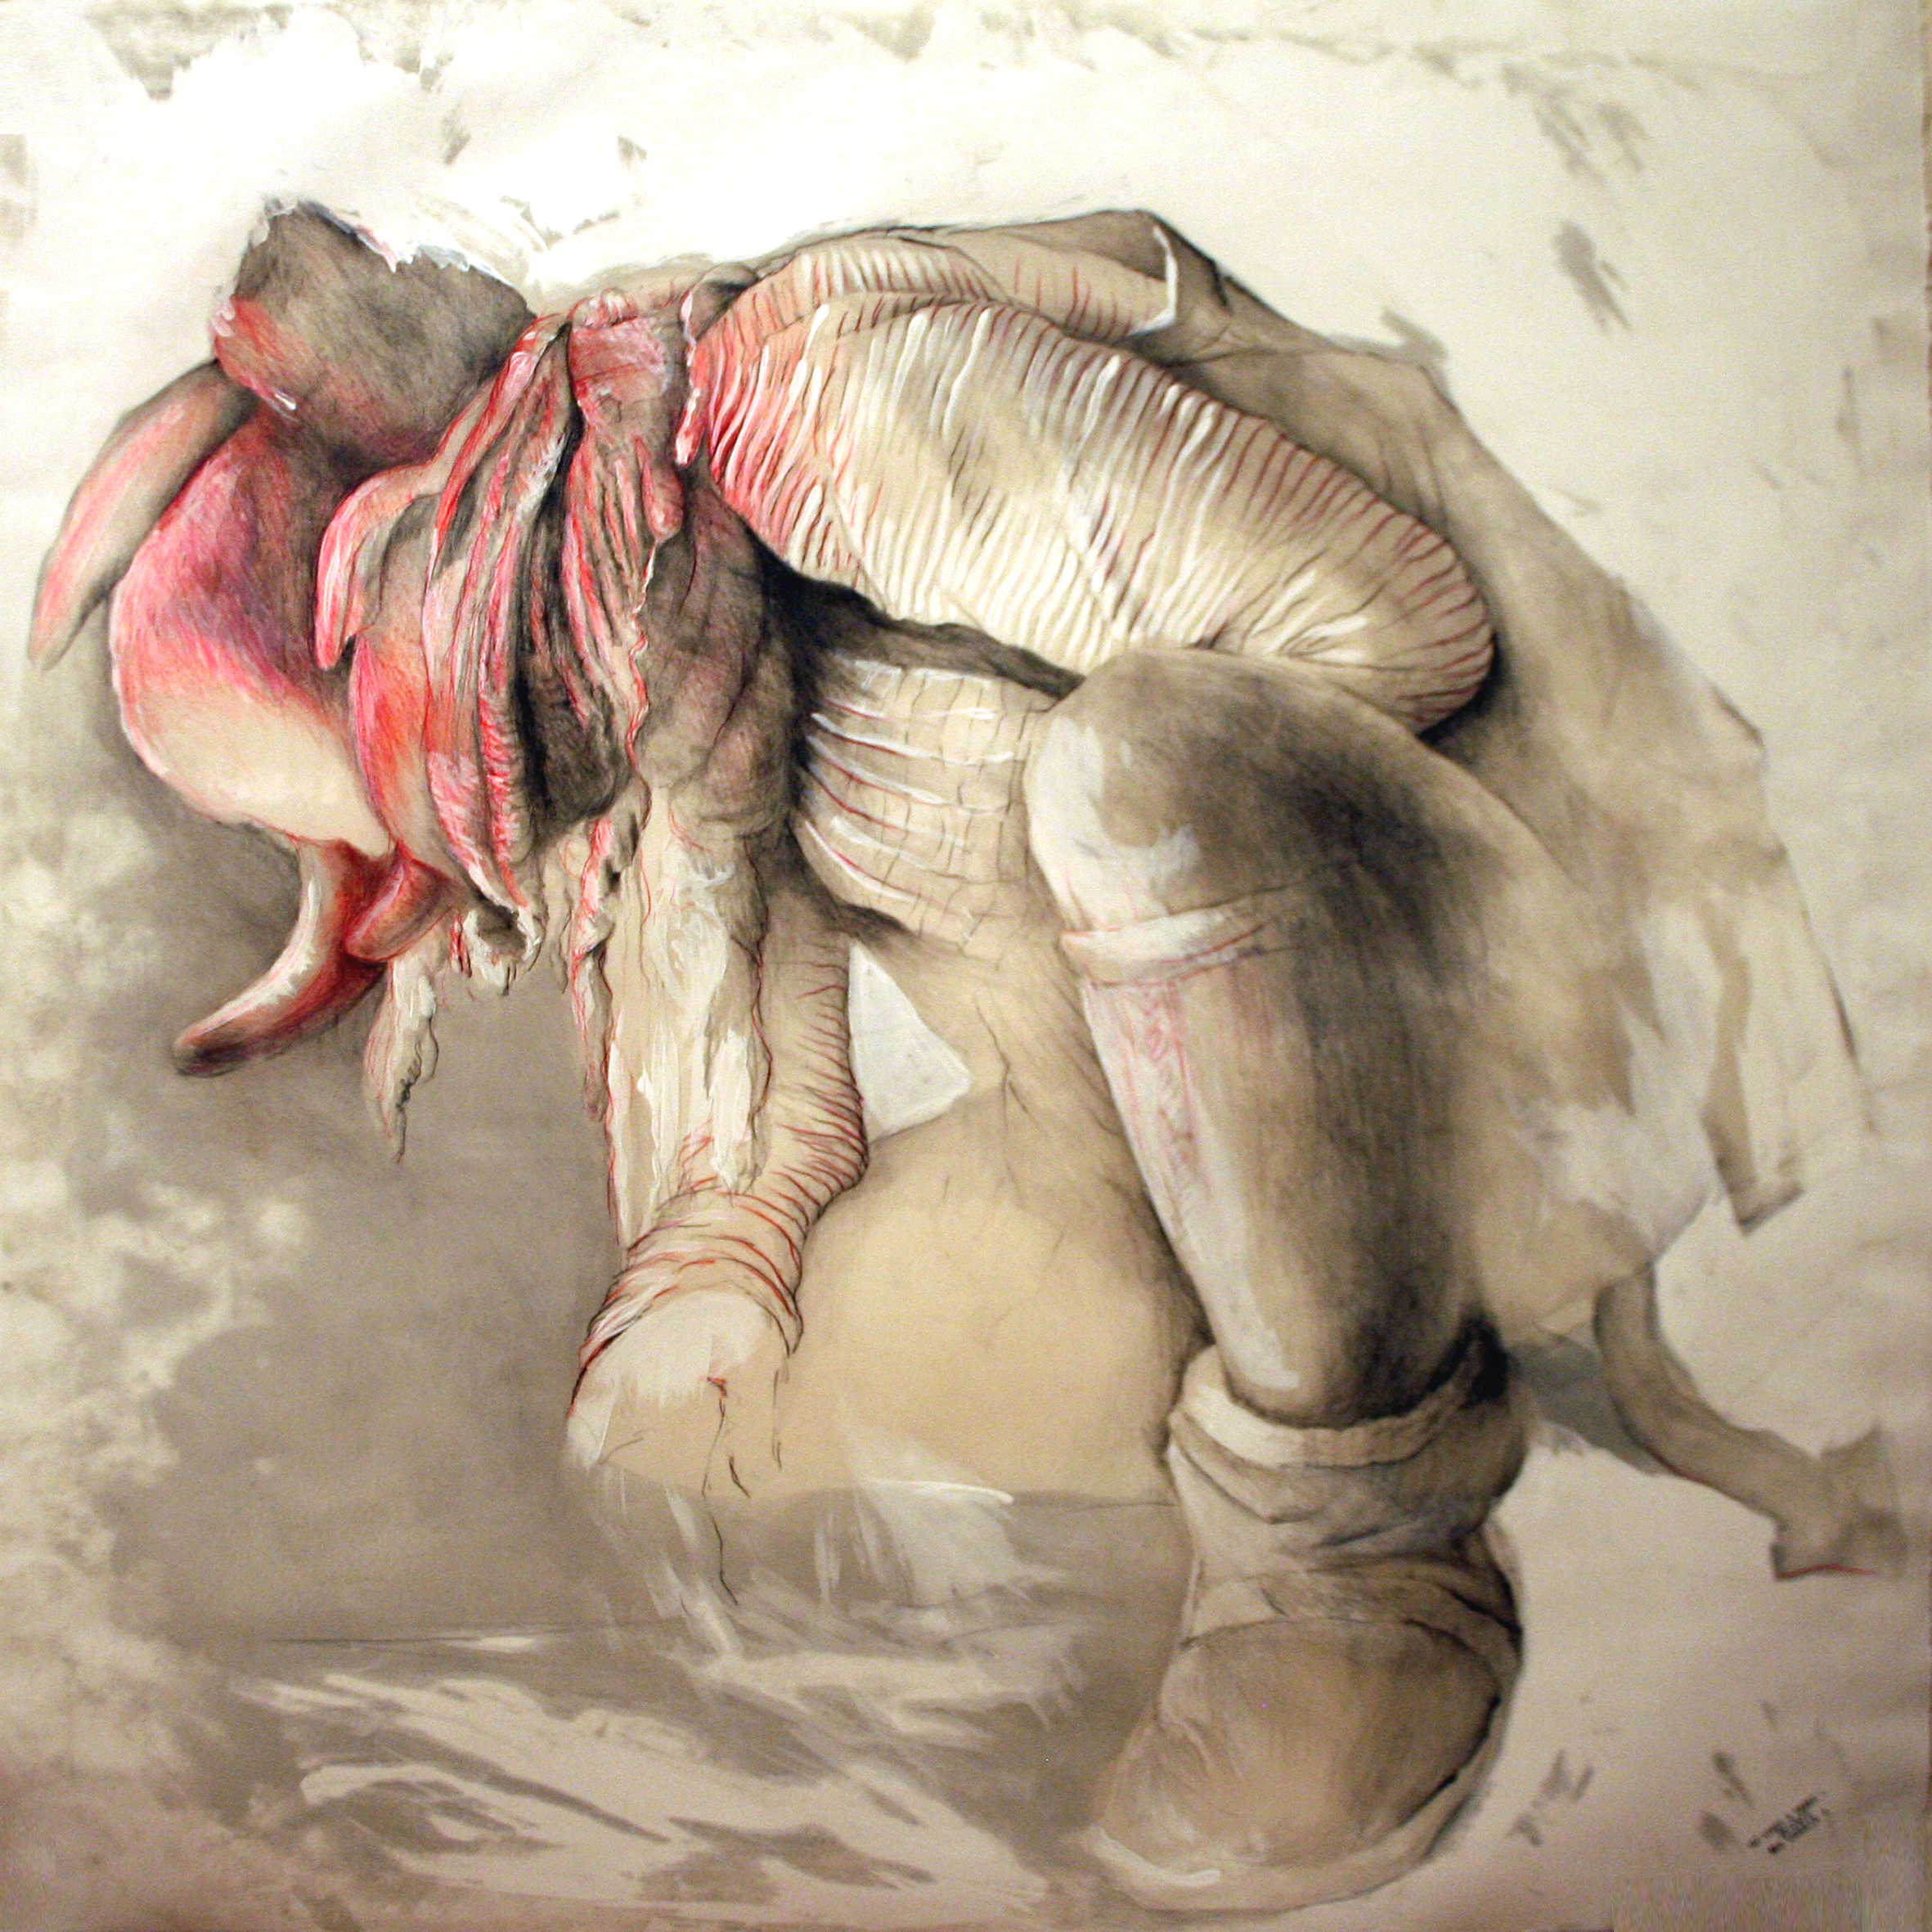 At least a snake n. 2/4 2012  pencil, pastels, chalk and wax on paper  40x40 inches